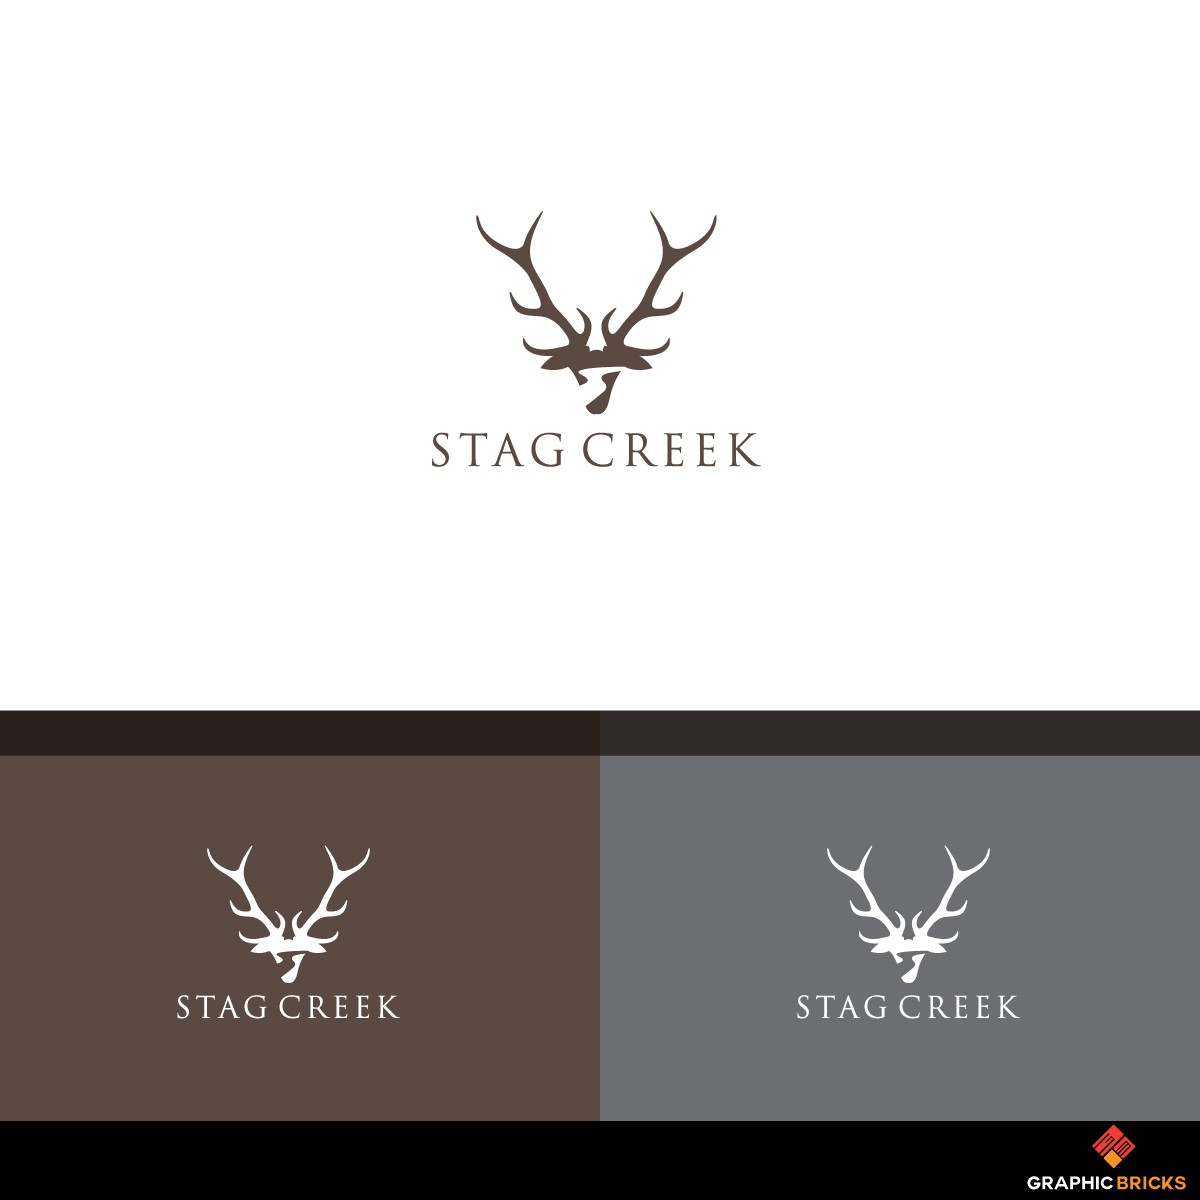 Design A Premium Logo for Stag Creek, A Luxury Men's Gift Brand